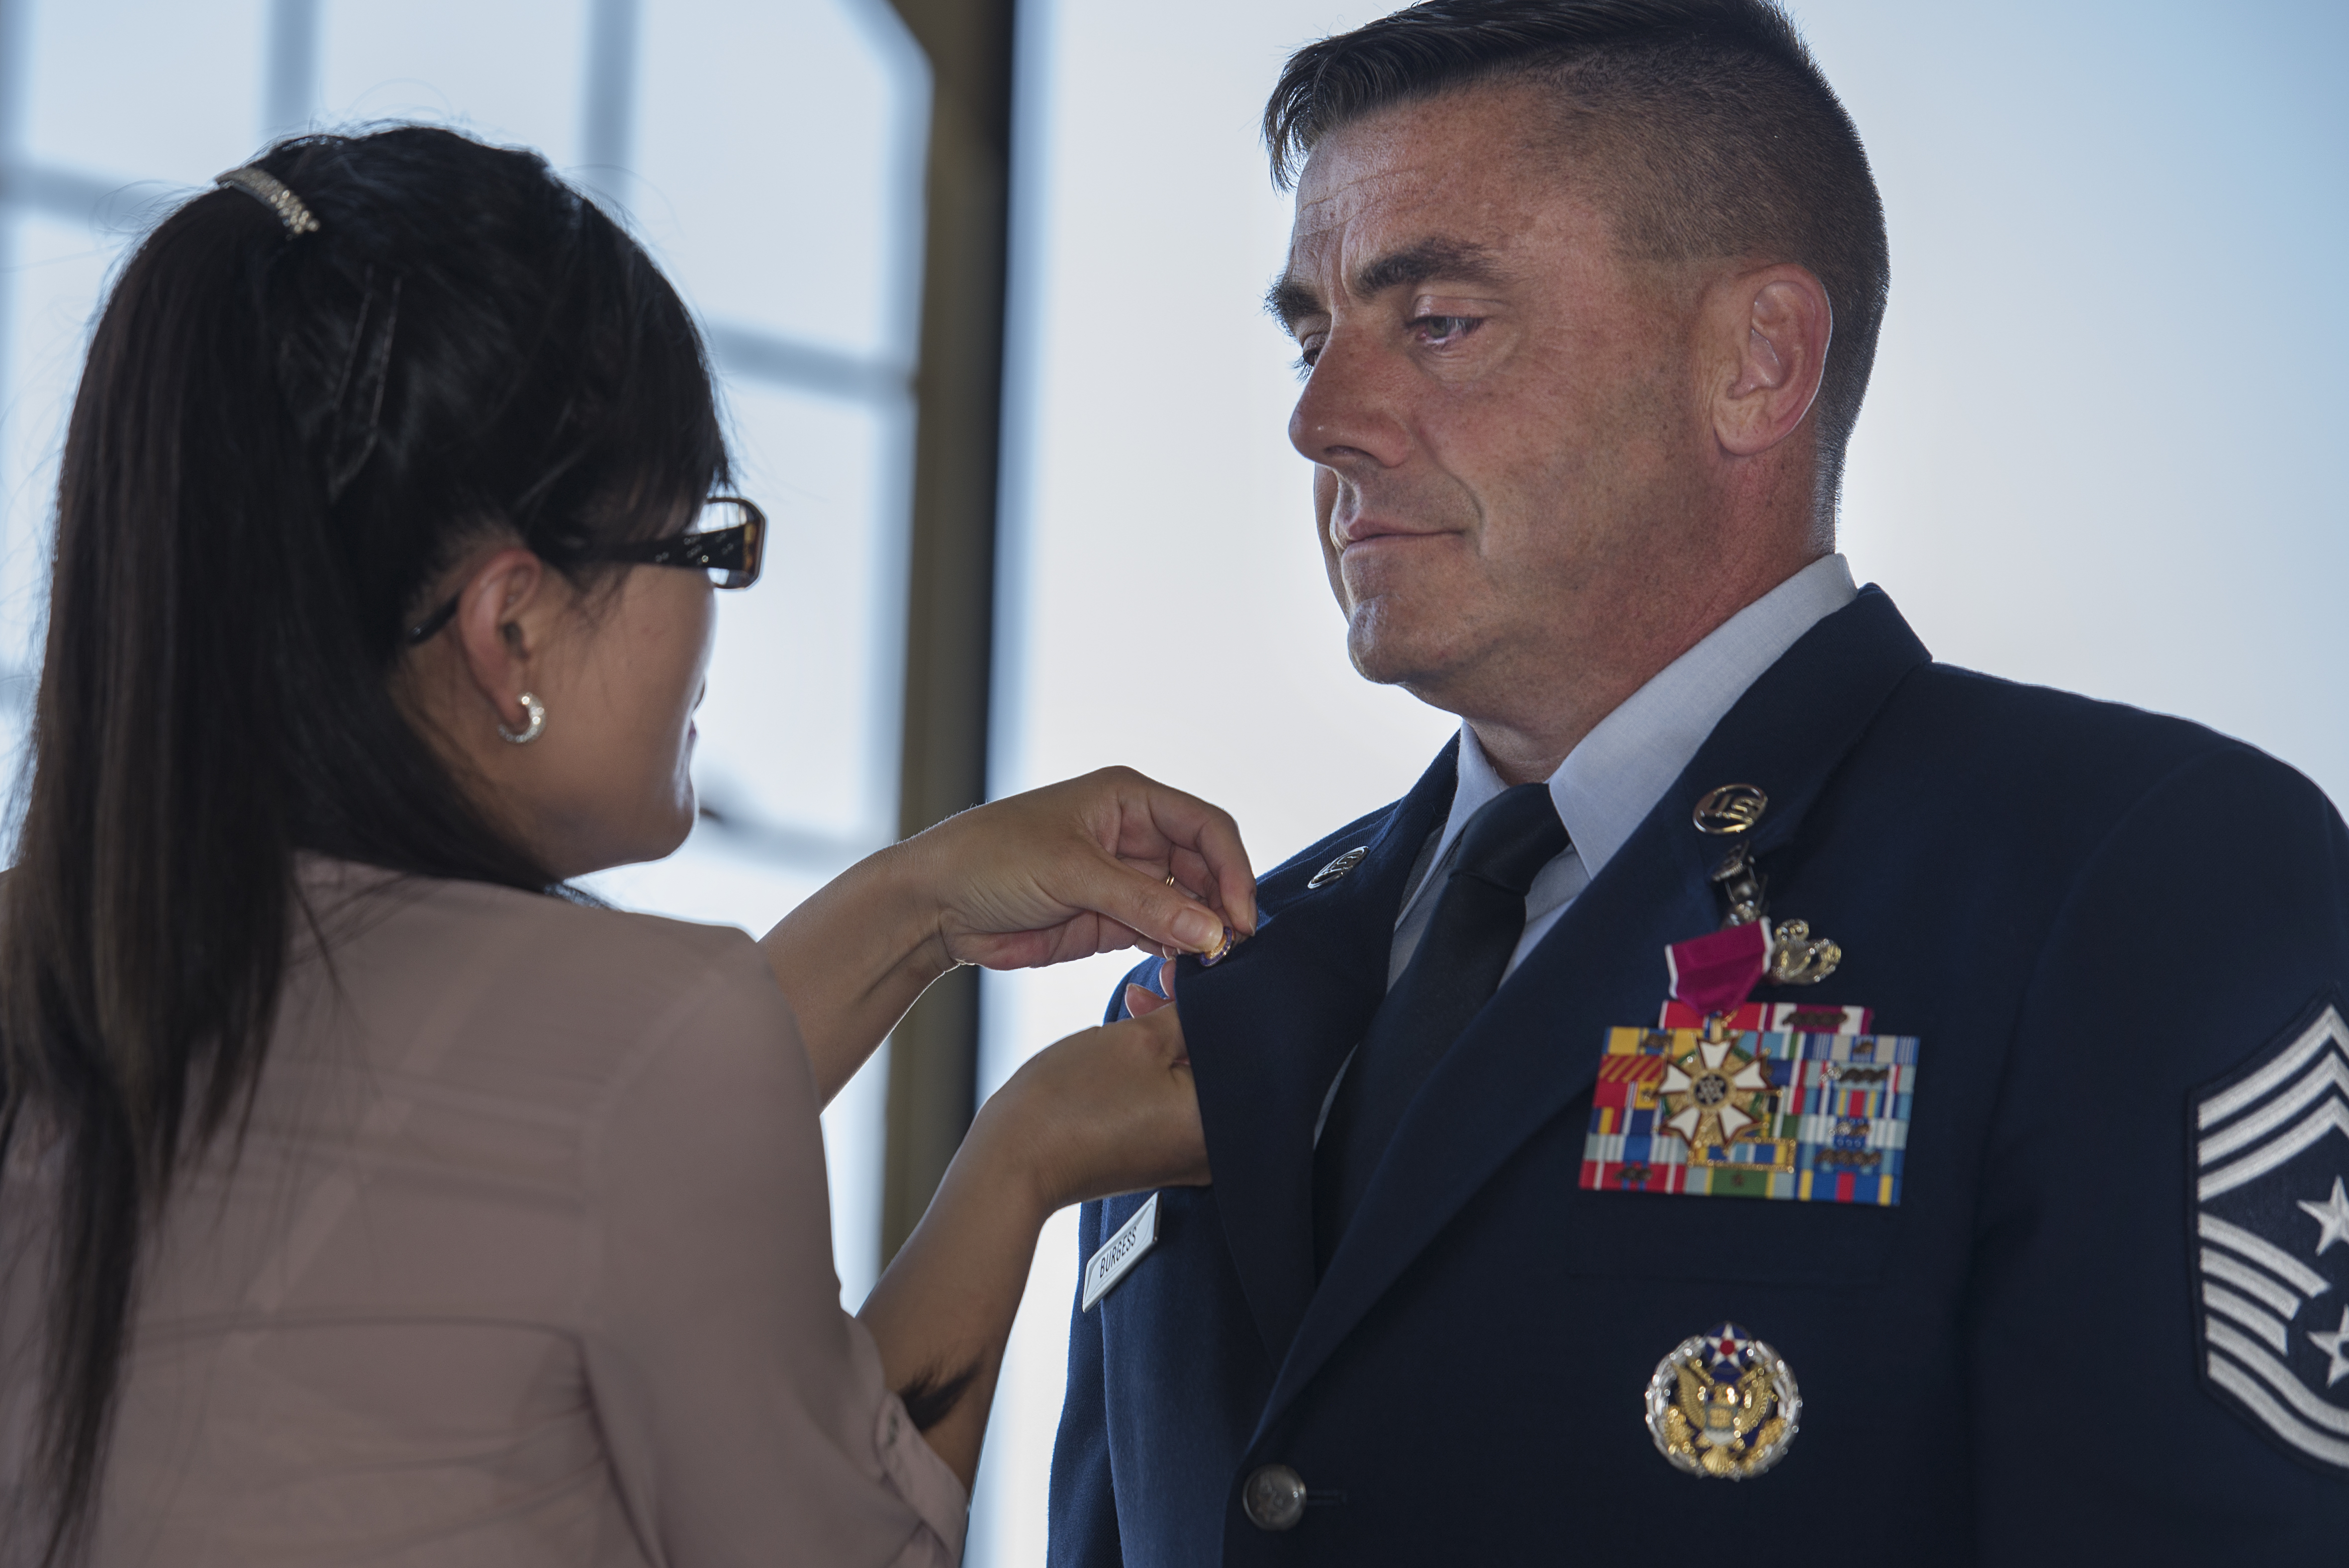 sheppard afb senior dating site Scribd is the world's largest social reading and publishing site  sheppard afb a male airman and a  documents similar to sex assault convictions.